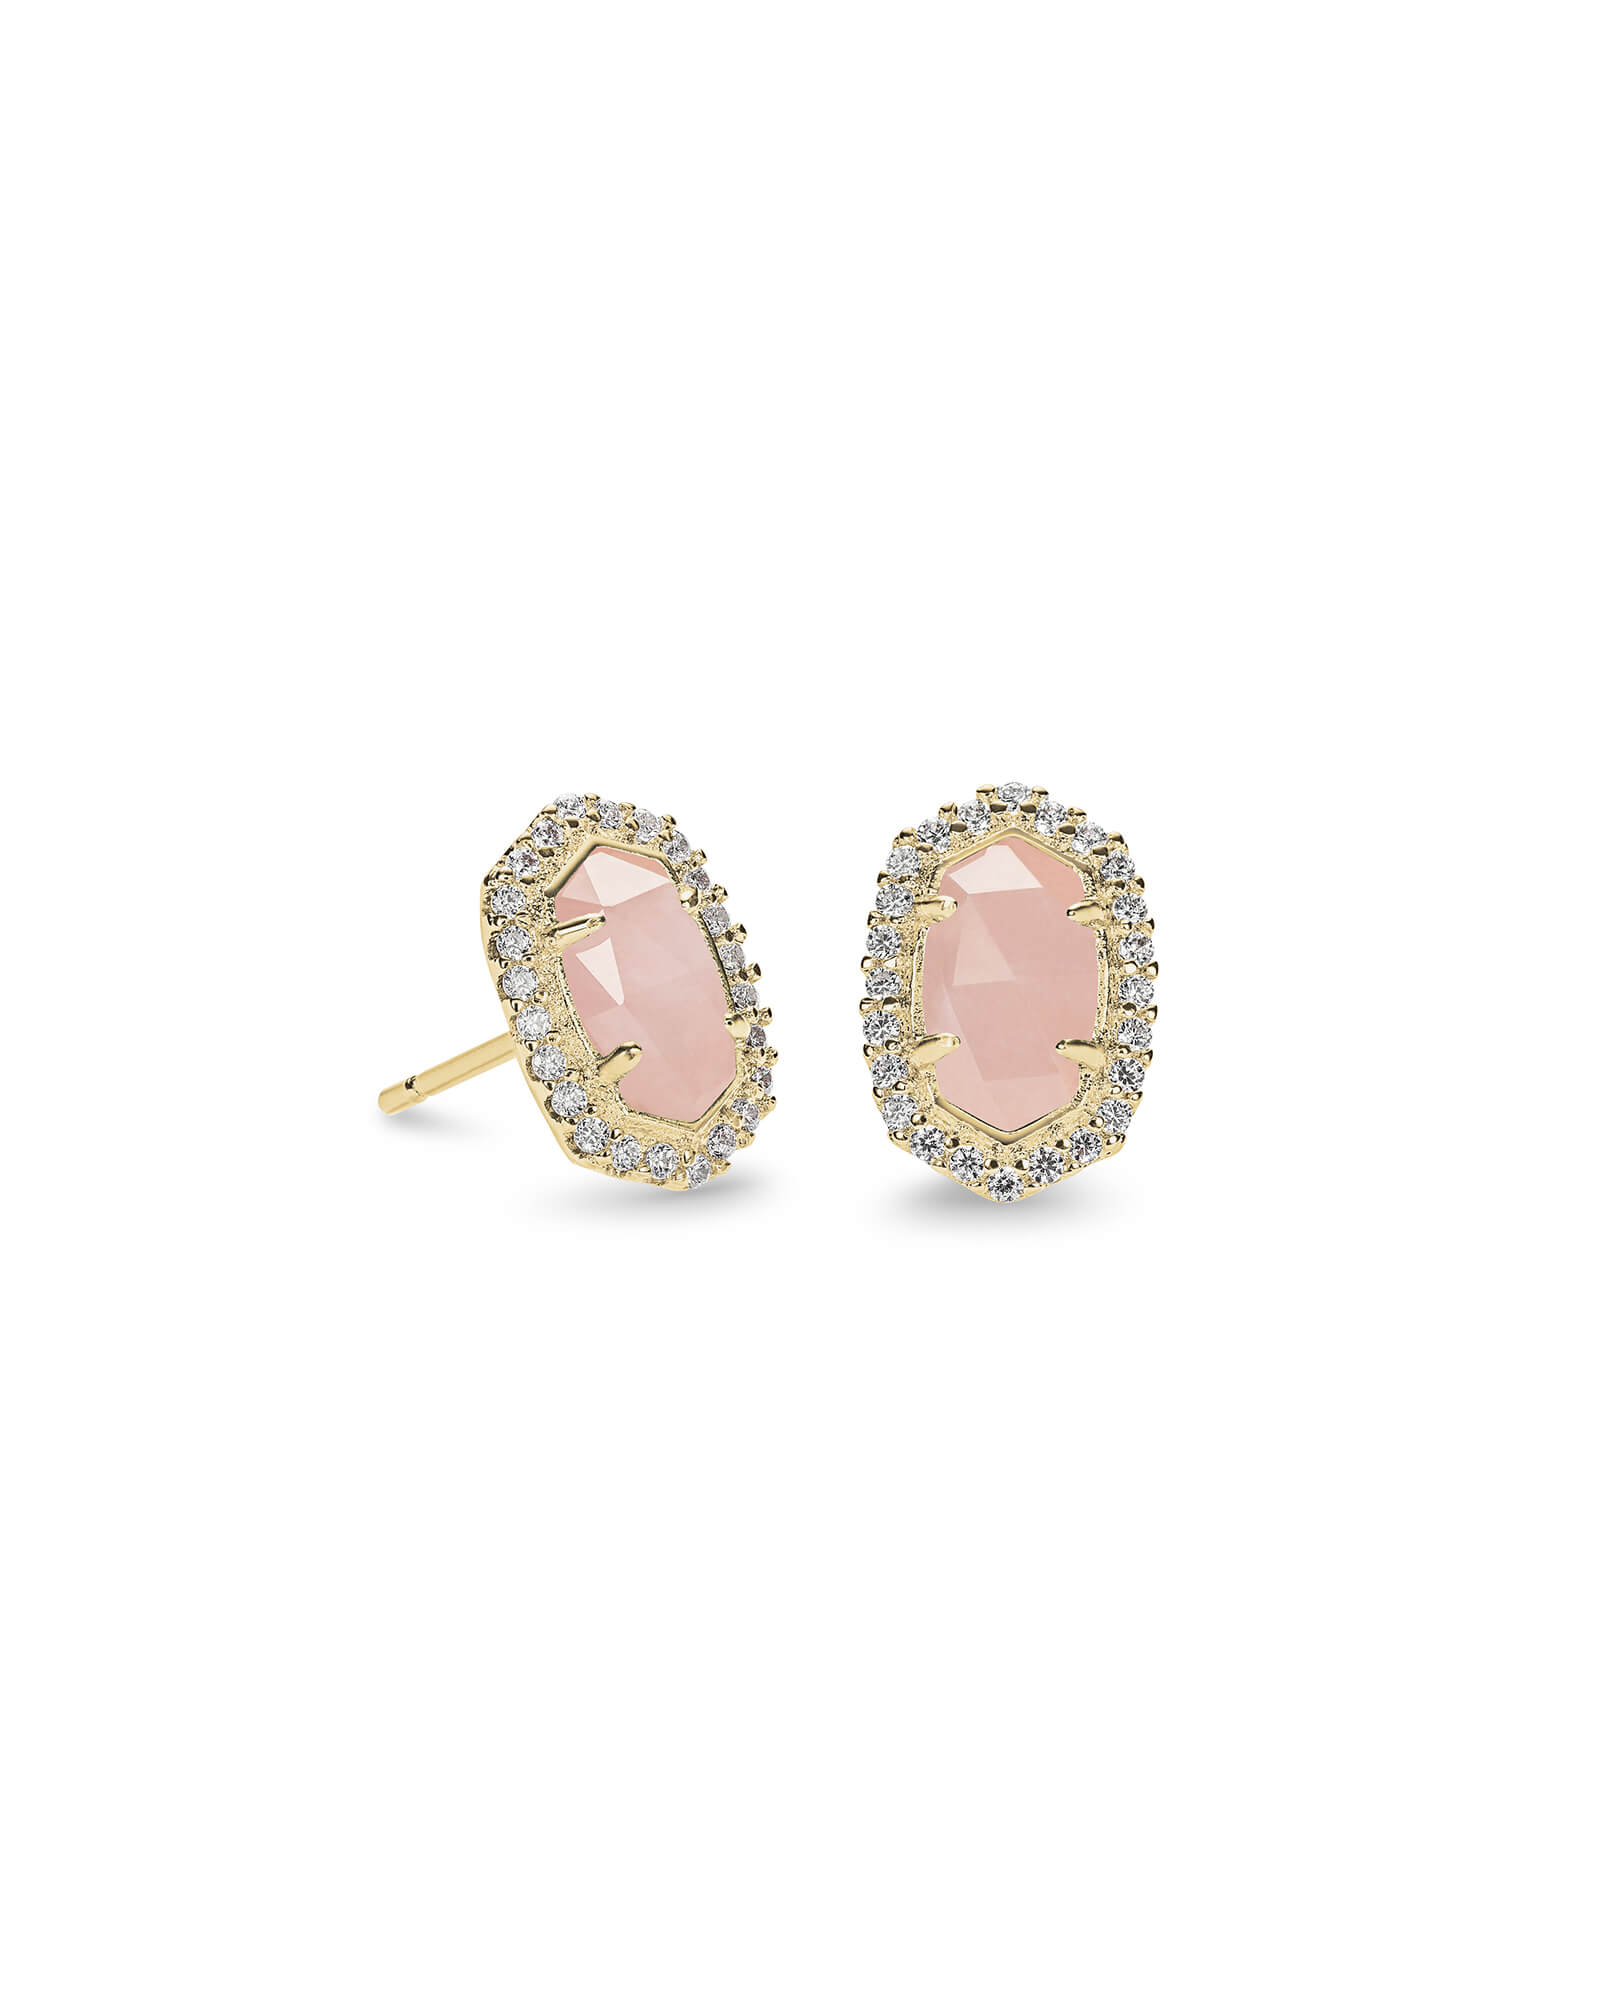 Cade Gold Stud Earrings in Rose Quartz